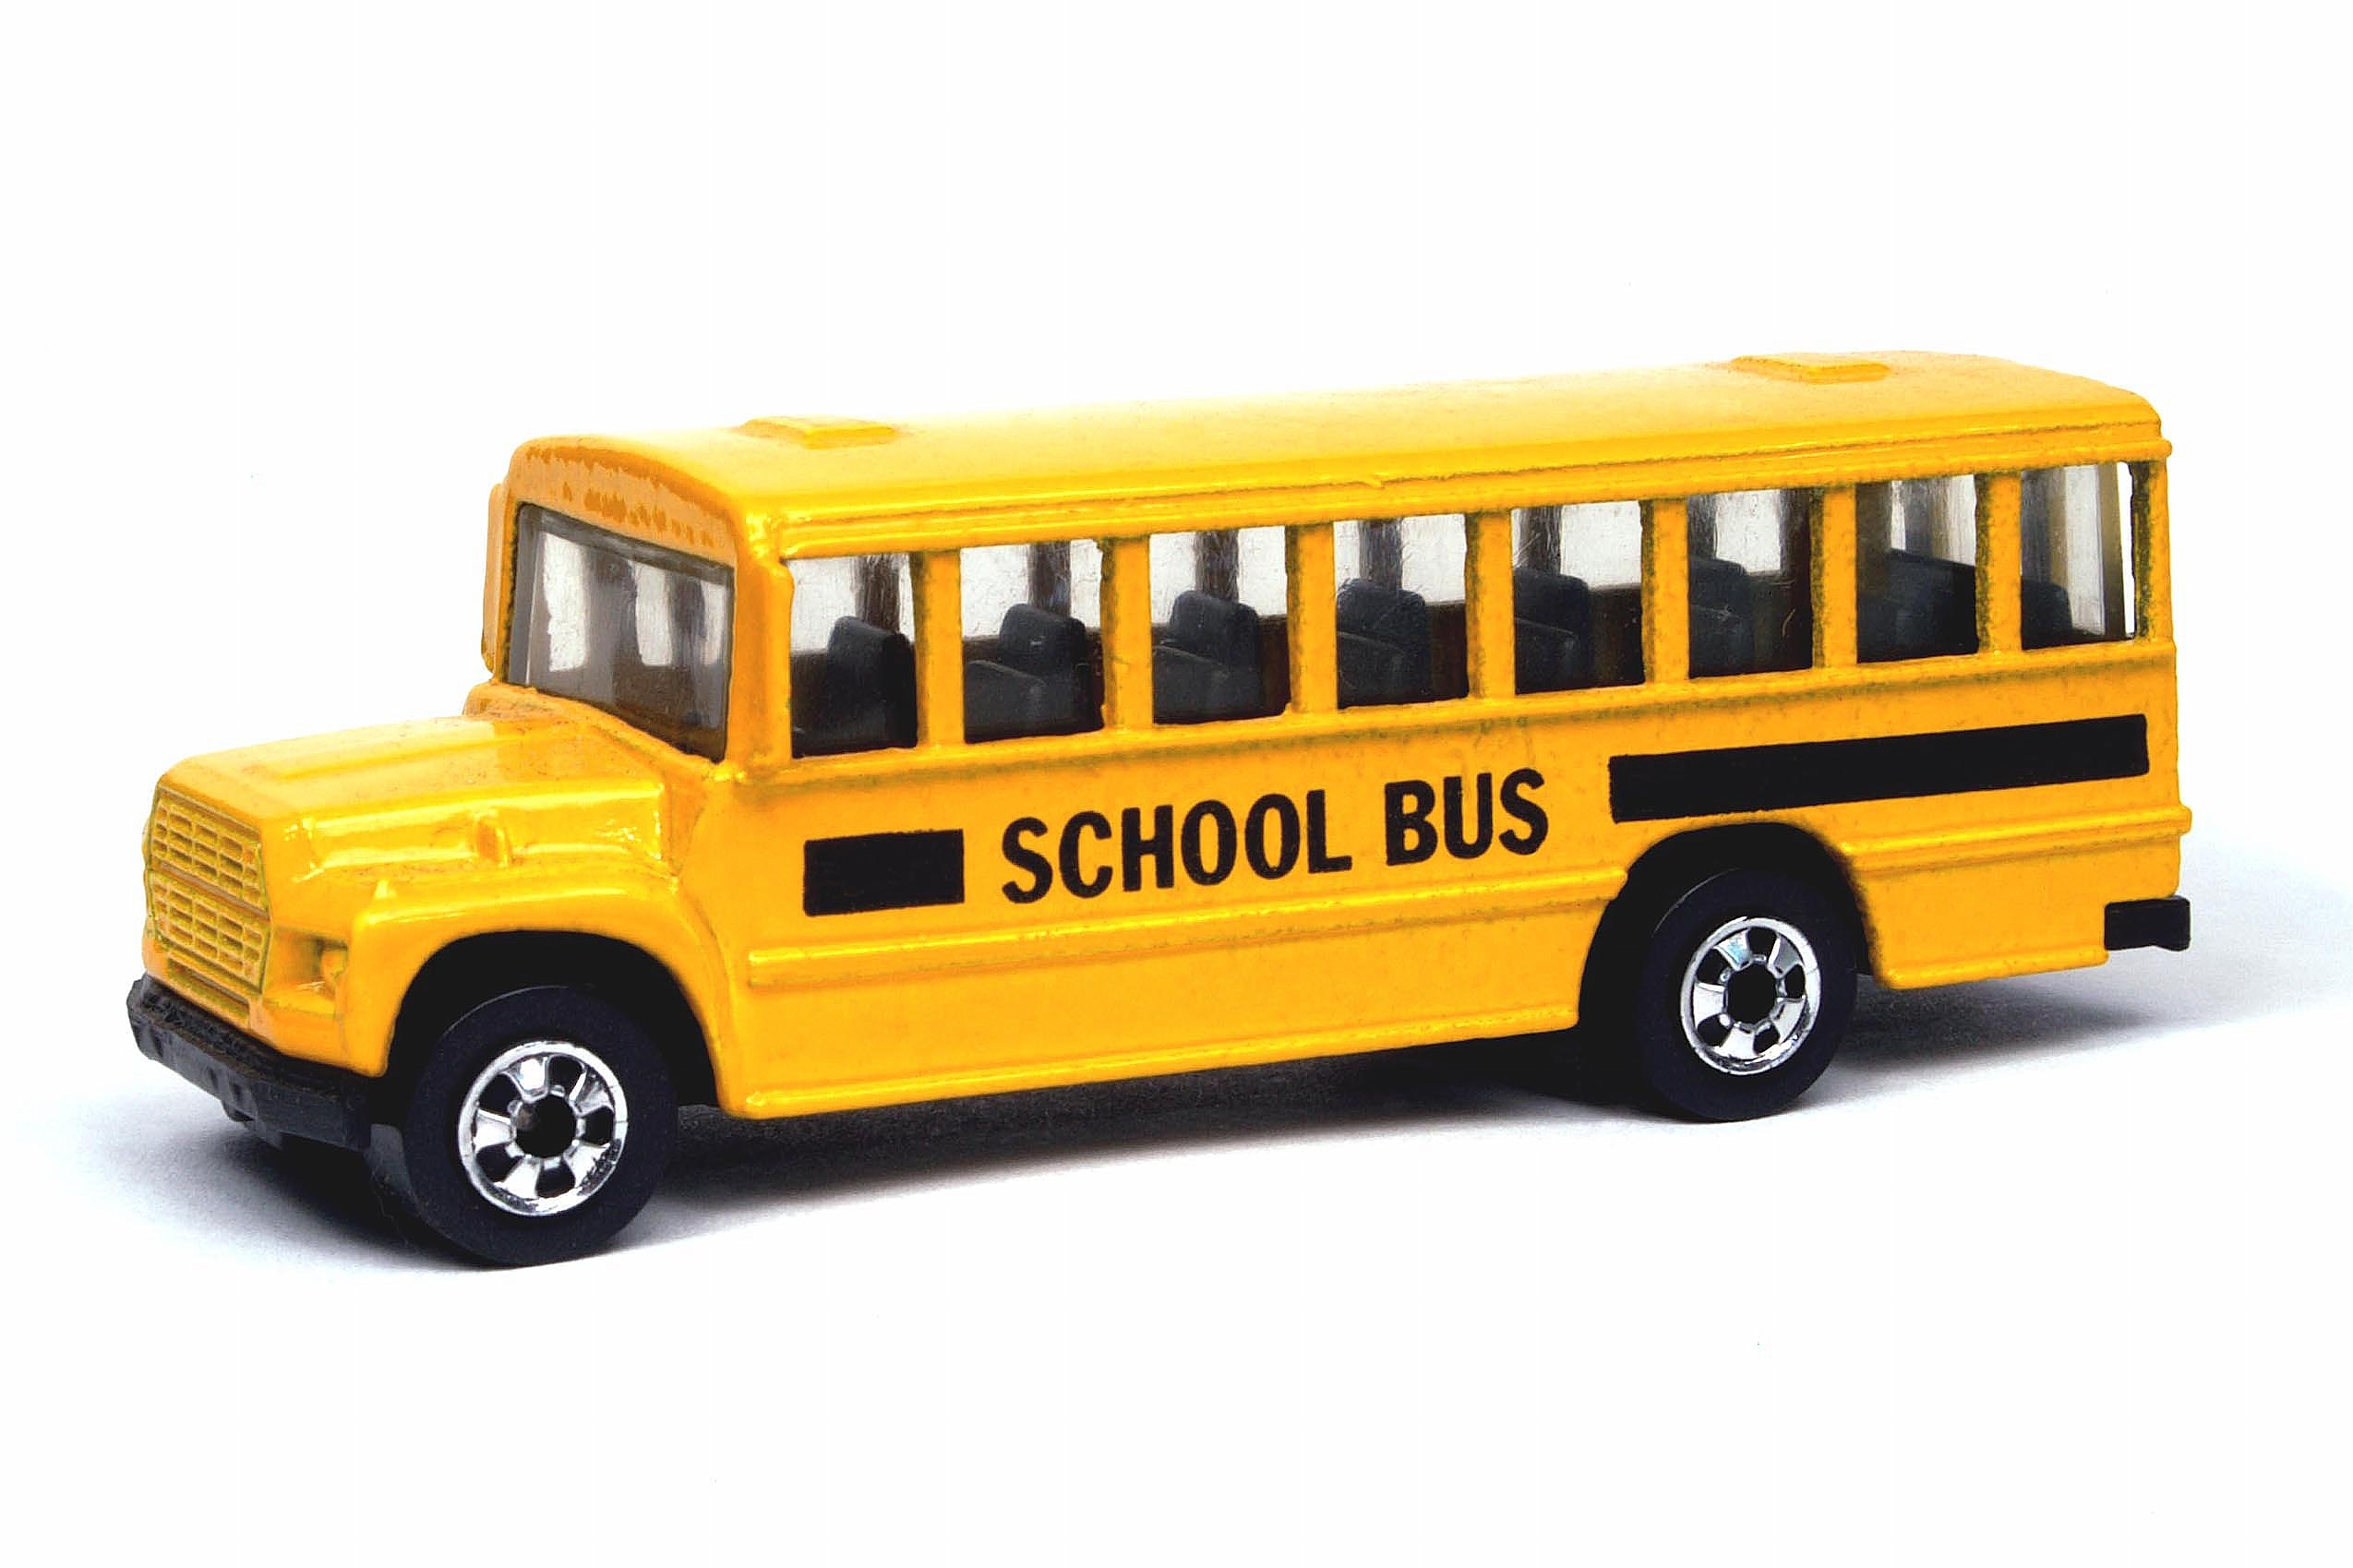 http://images.wikia.com/hotwheels/images/archive/7/77/20091020084900!School_Bus_-_3030cf2.jpg